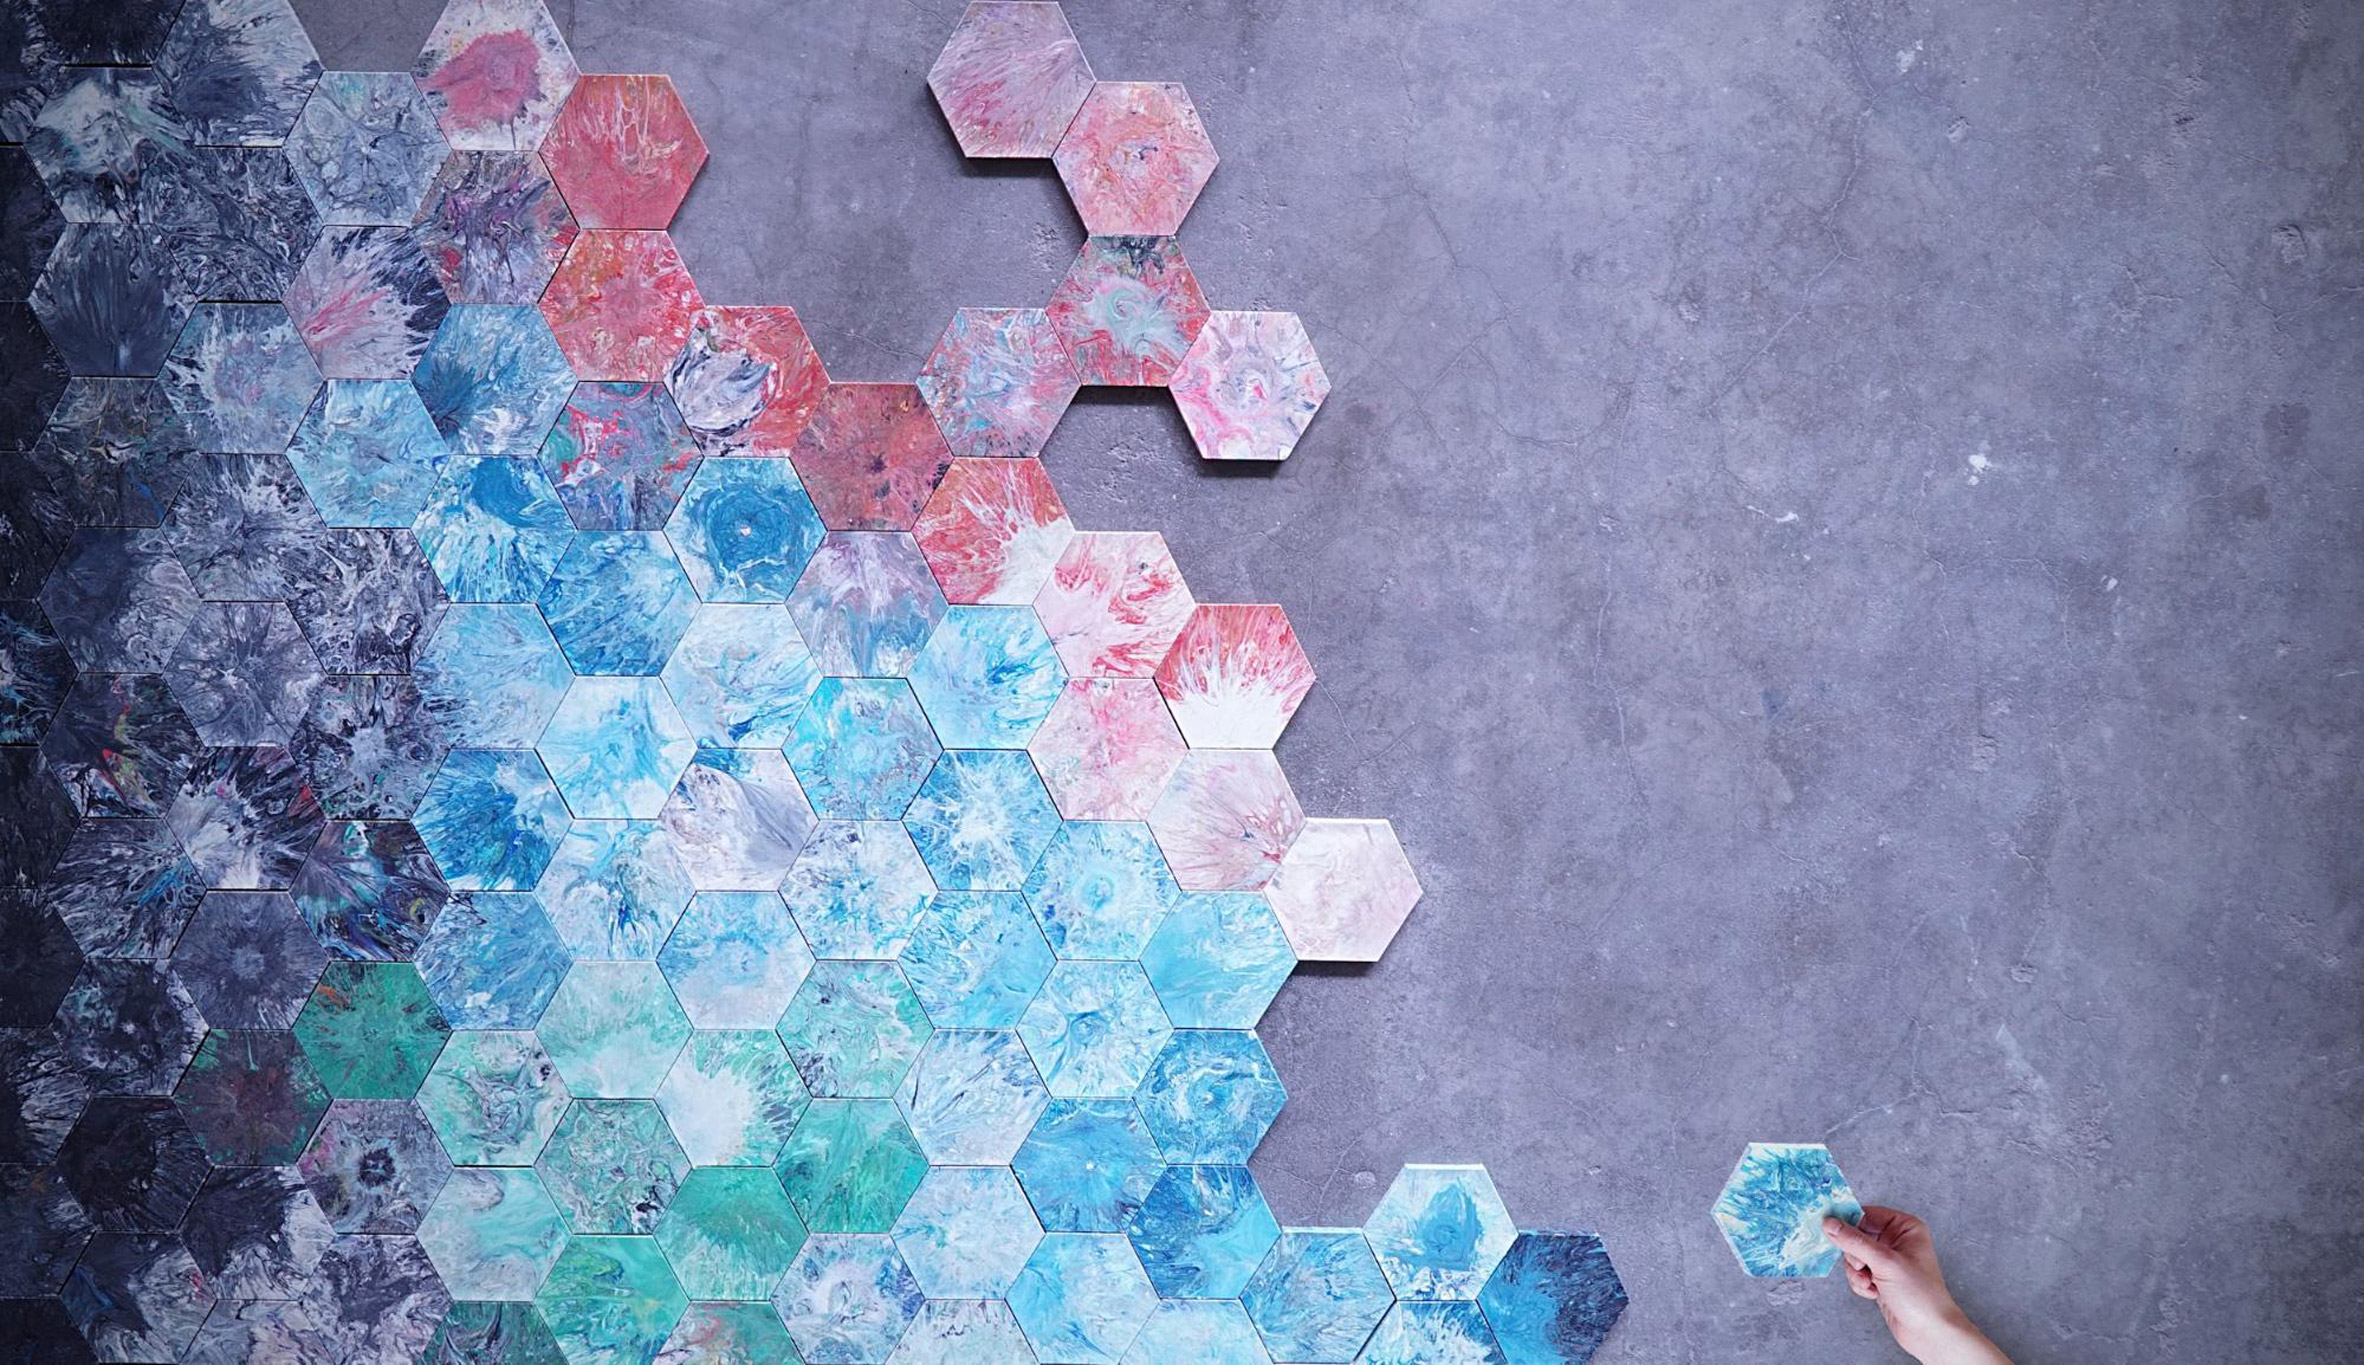 A wall of hexagonal recycled plastic tiles.